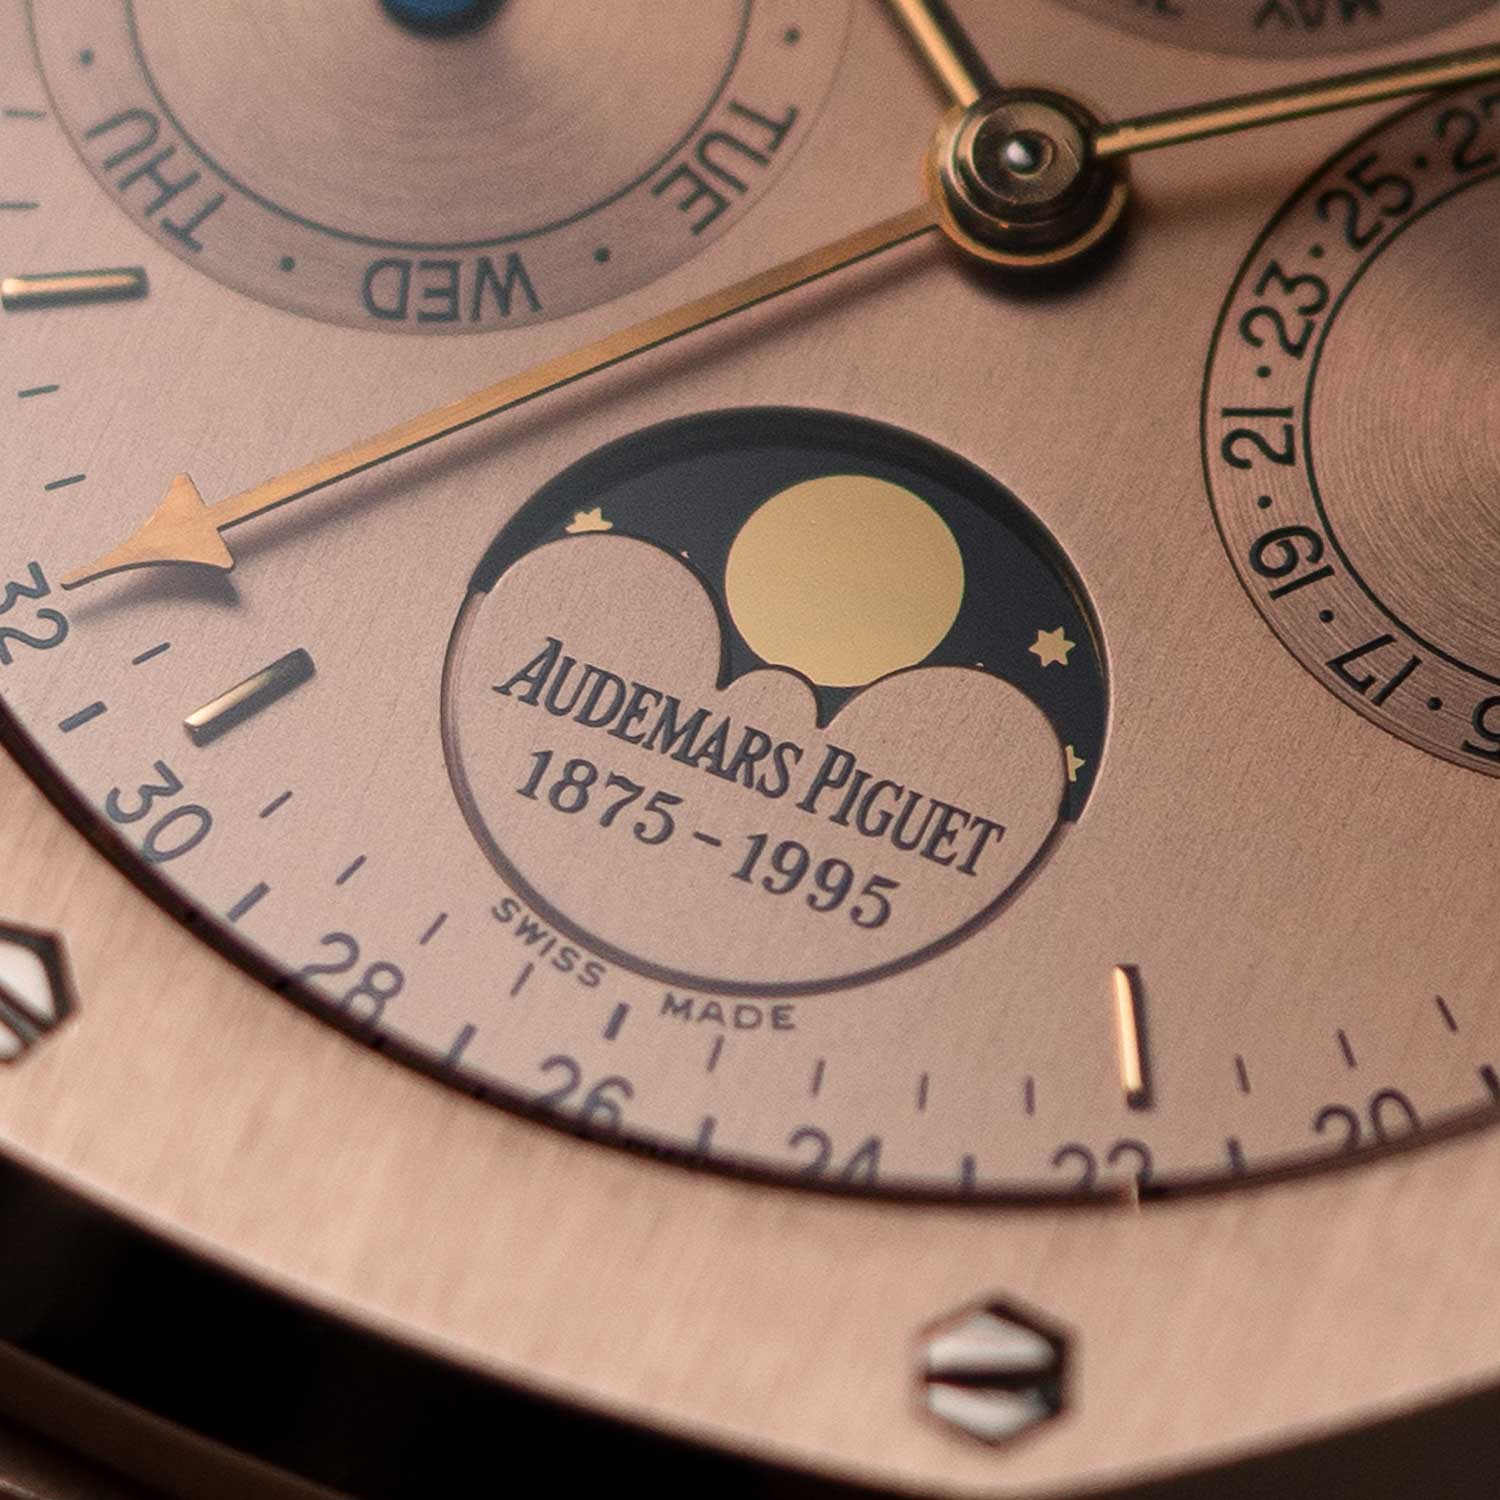 In 1995, Audemars Piguet celebrated its 120th anniversary with the limited edition ref. 25810.OR.01; the watch ushers in the reappearance of the leap-year indicator coaxially mounted with the month hand in the subdial at 12 o'clock; similar to the the leap-year cycle, in exactly the same font as that in the second-series 5516 watches; the watch seen here is presently part of the Pygmalion Gallery's private collection (Image: Photo and watch, property of Pygmalion Gallery)